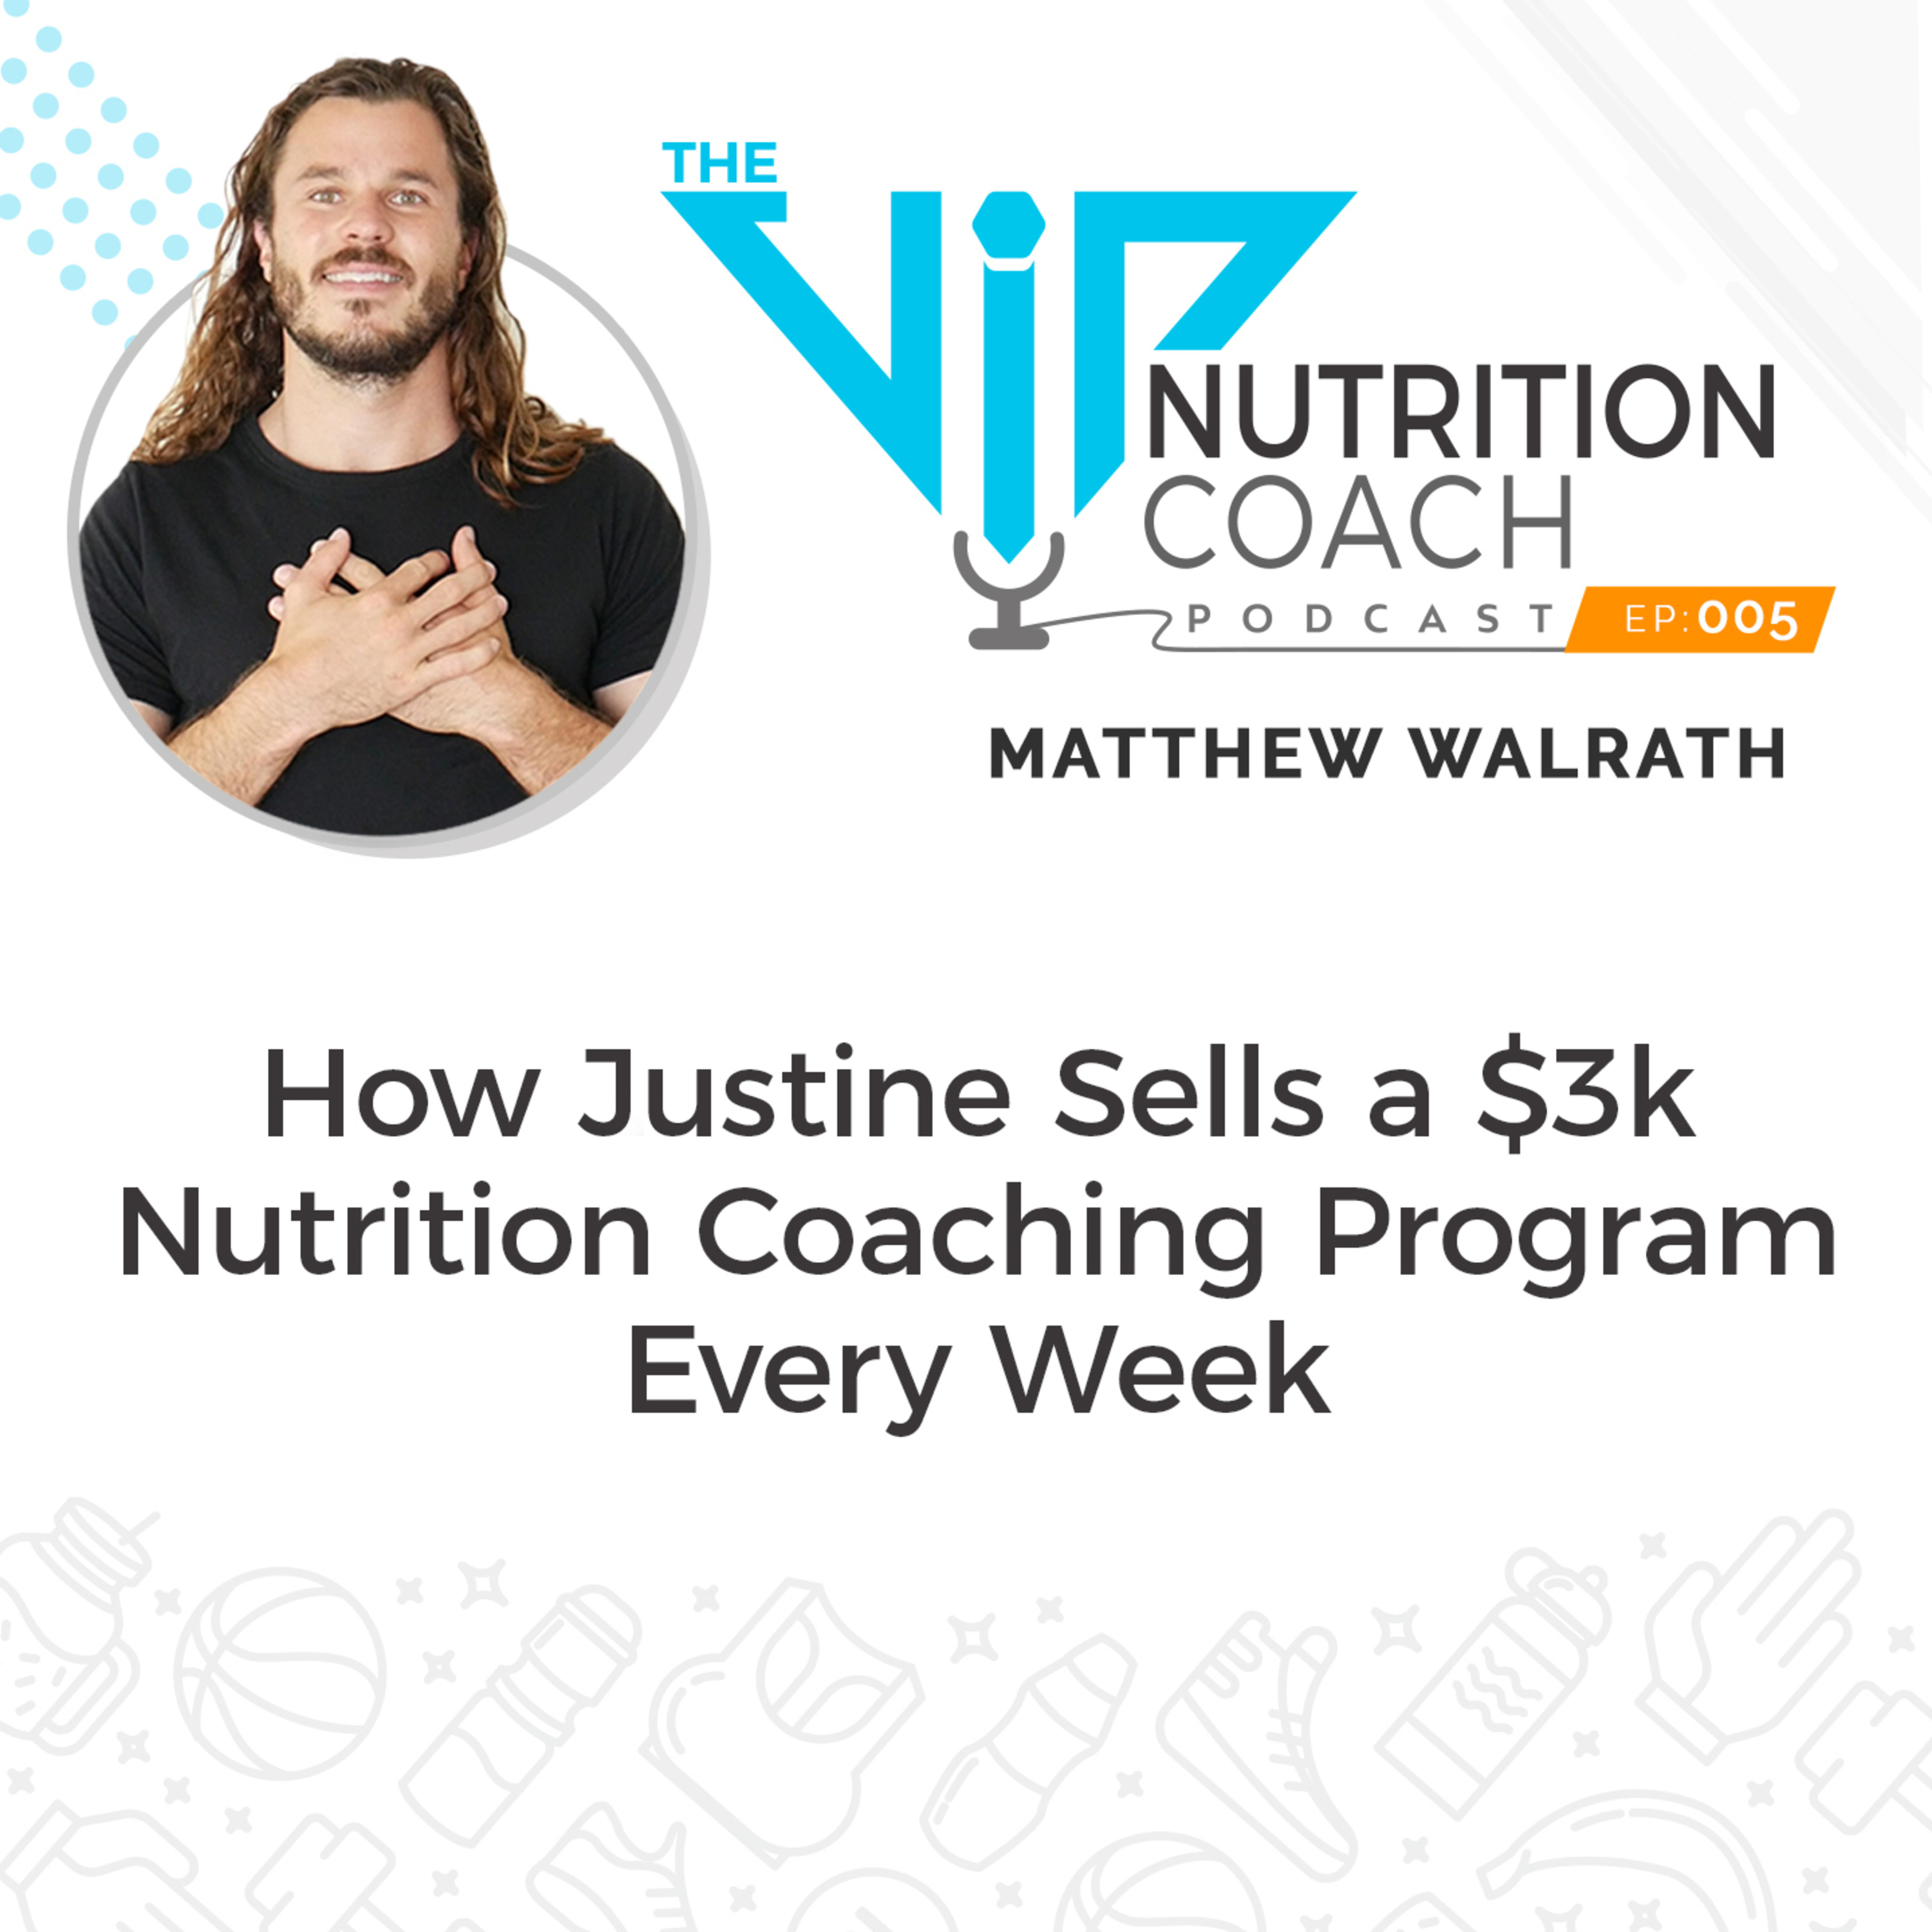 How Justine Sells a $3k Nutrition Coaching Program Every Week